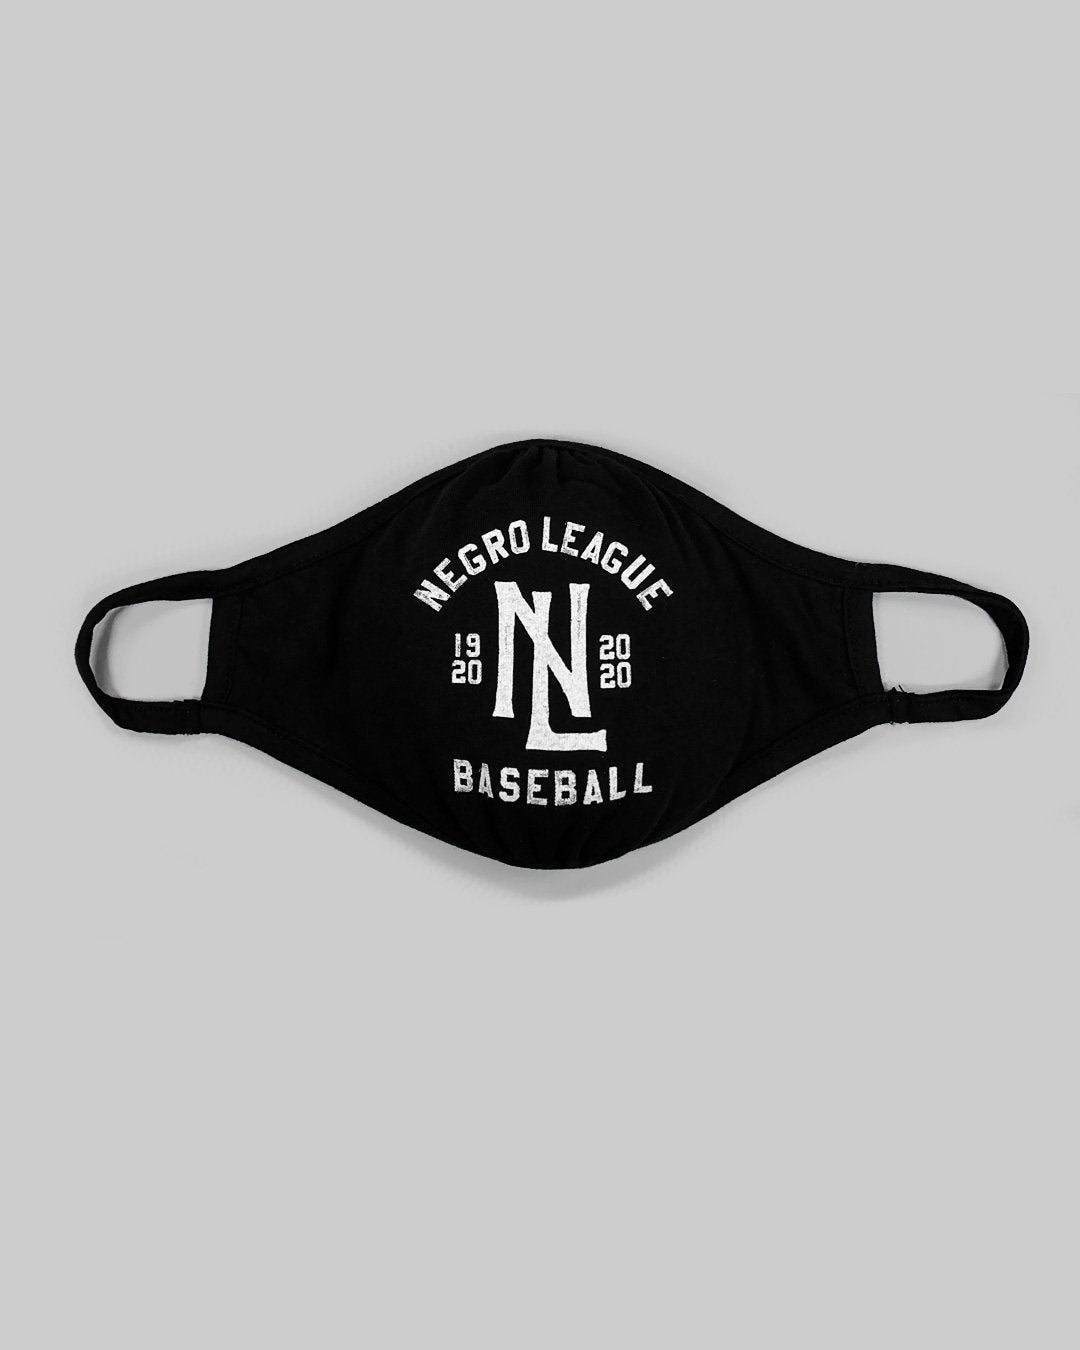 Negro League Baseball Face Mask Combo - Roots of Inc dba Roots of Fight